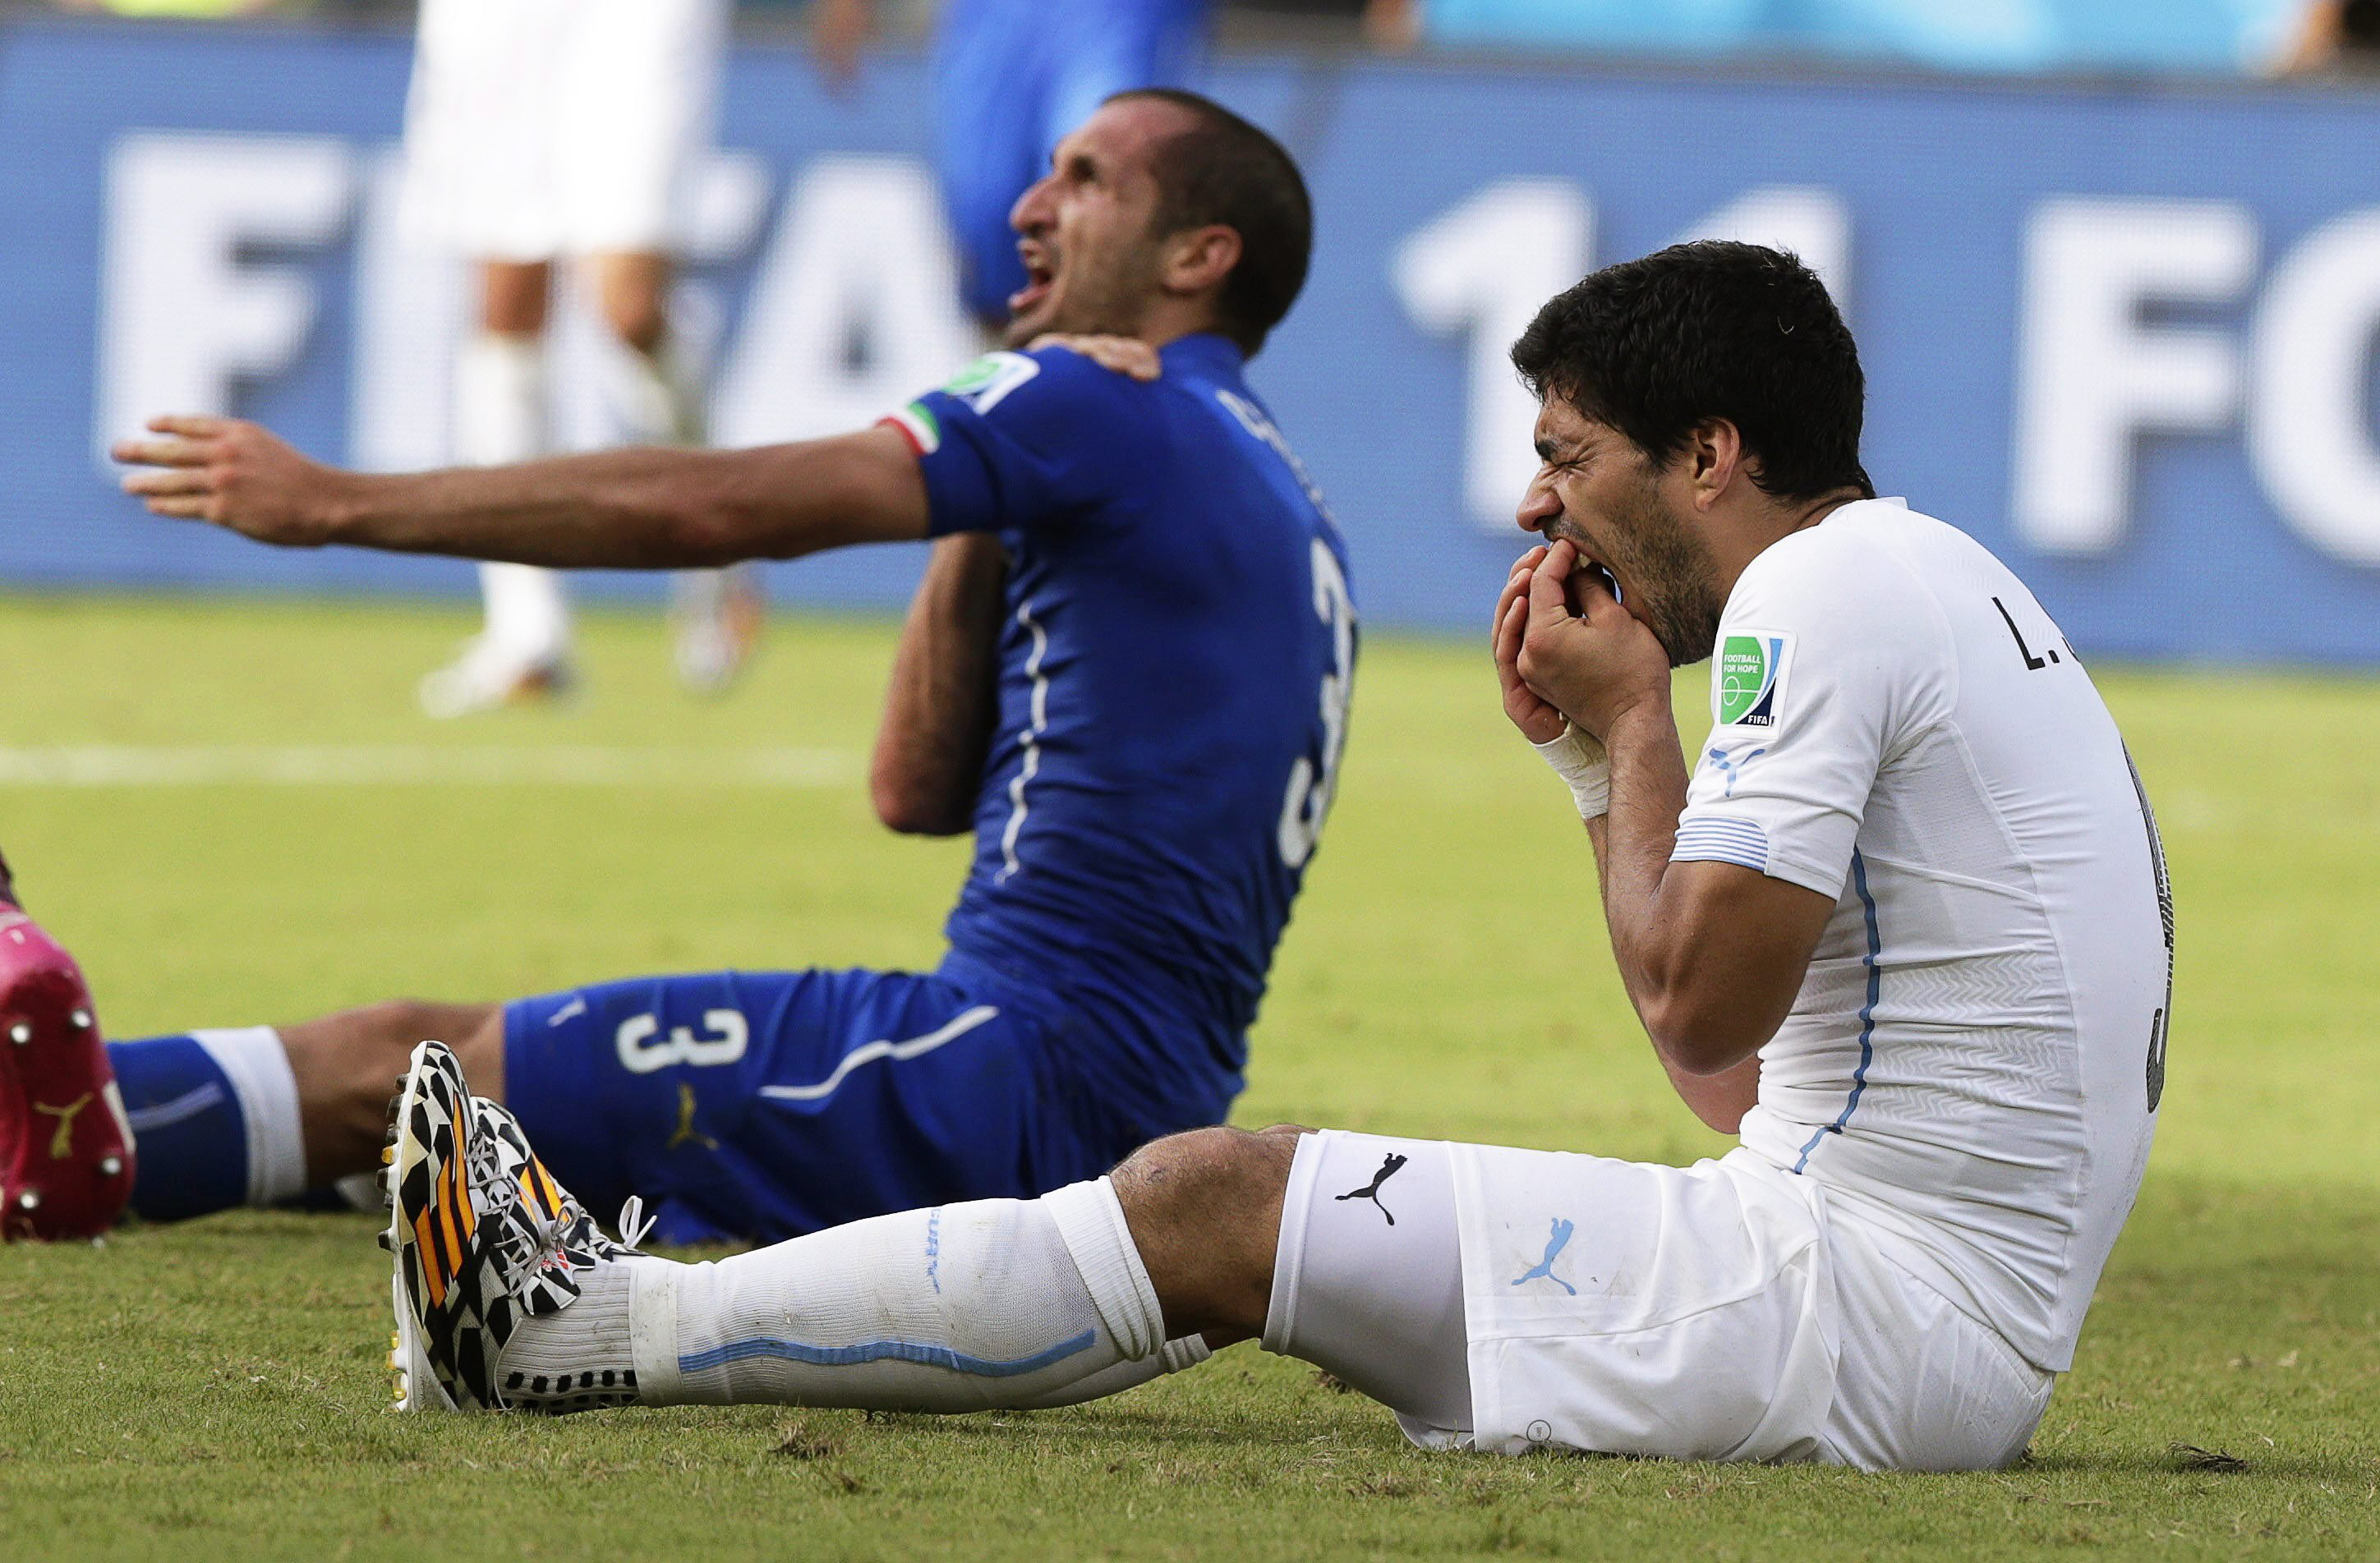 Giorgio Chiellini claims he was bitten by Uruguay's Luis Suarez during the FIFA World Cup 2014 group D preliminary round match between Italy and Uruguay at the Estadio Arena das Dunas in Natal, Brazil on June 24, 2014.